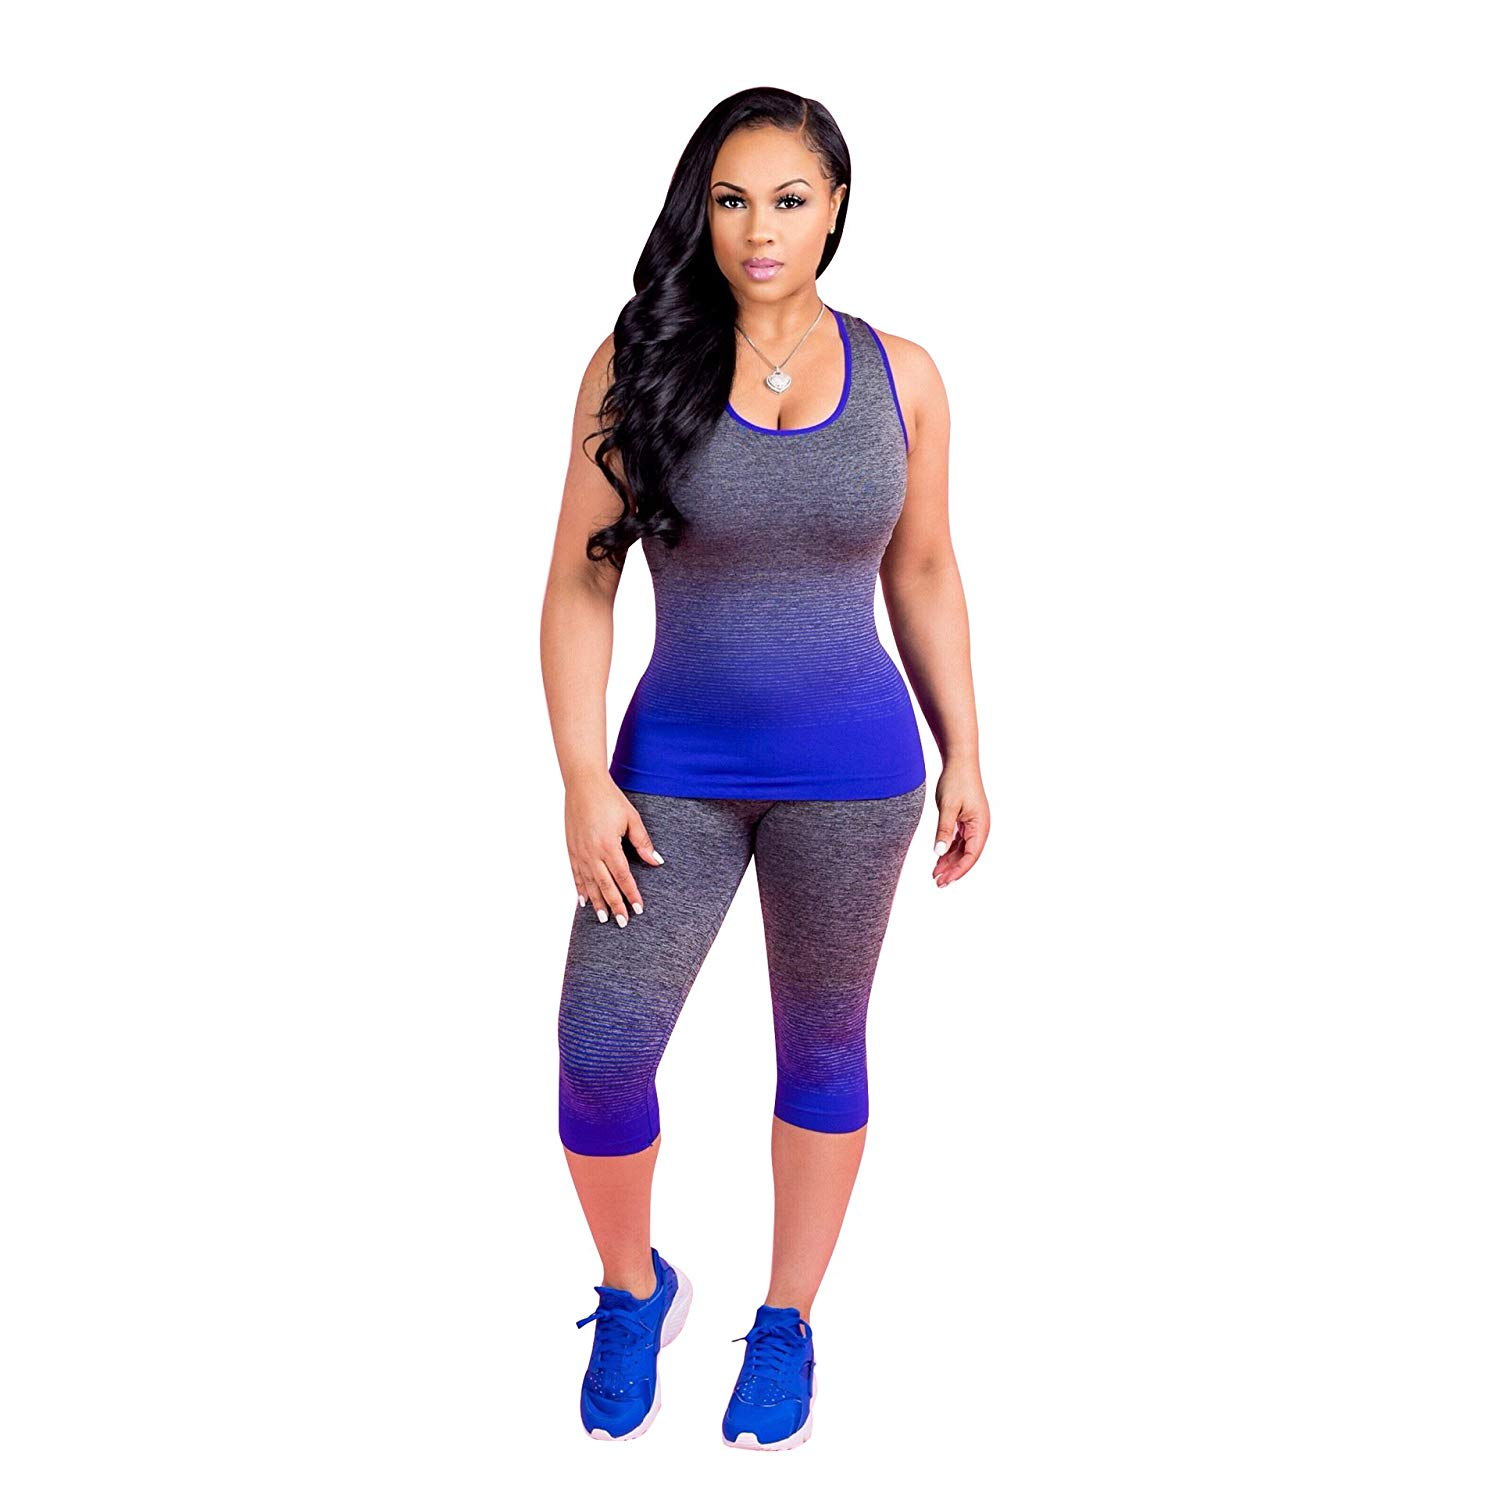 3deebae40c57 Get Quotations · Sexy Women Sleeveless Racerback Yoga Tank Top Capris  Tights Pants Sweatsuit Two Piece Outfits Jumpsuits